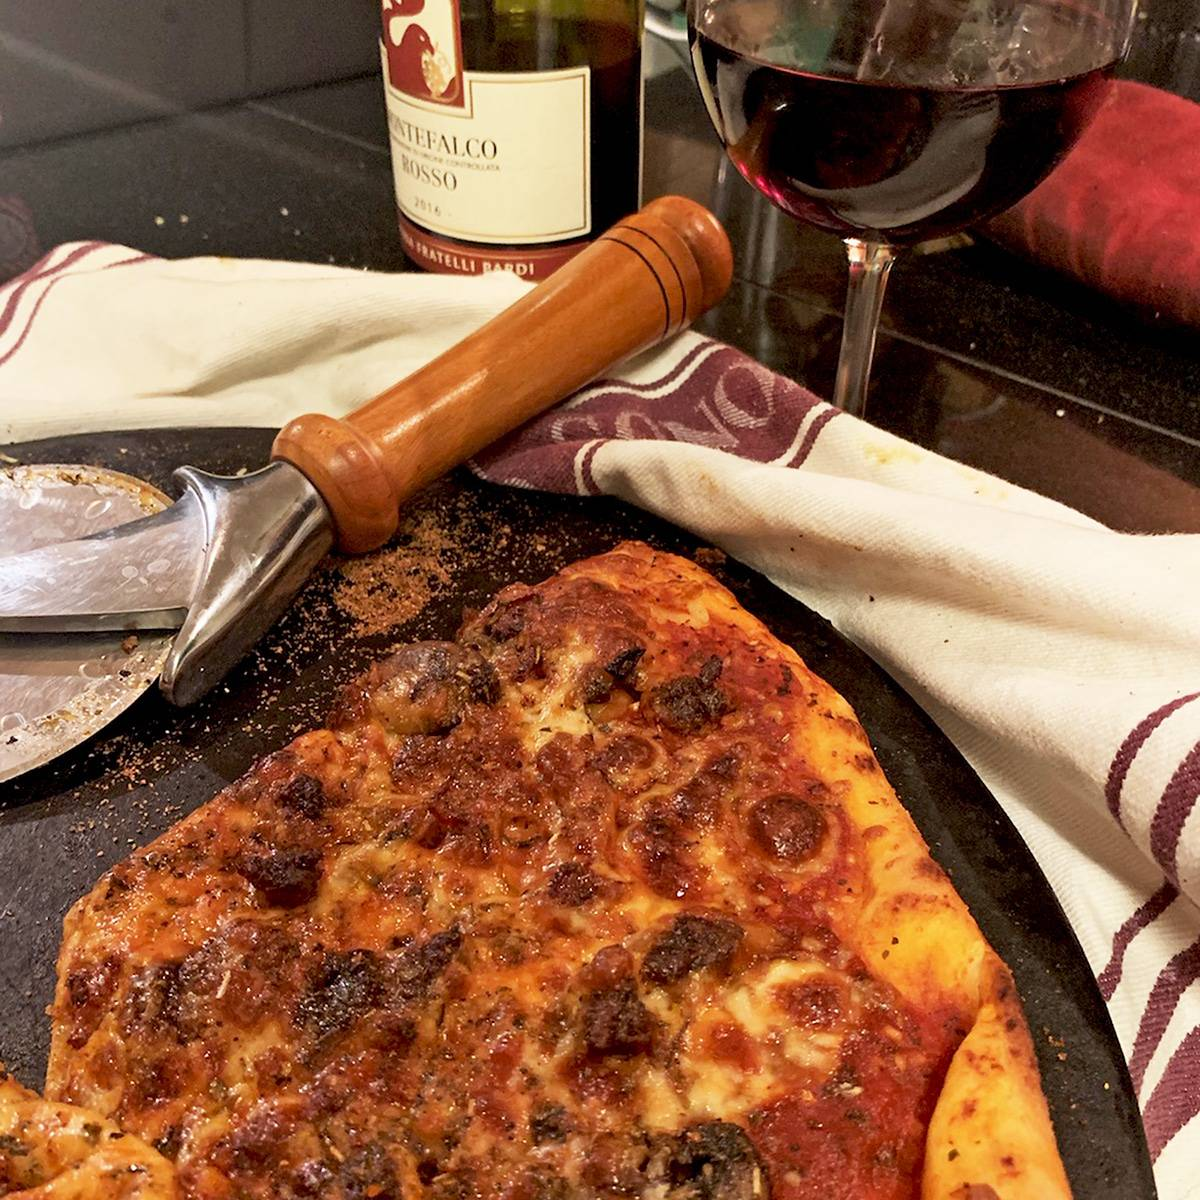 Homemade pizza on a pizza stone with glass of wine.